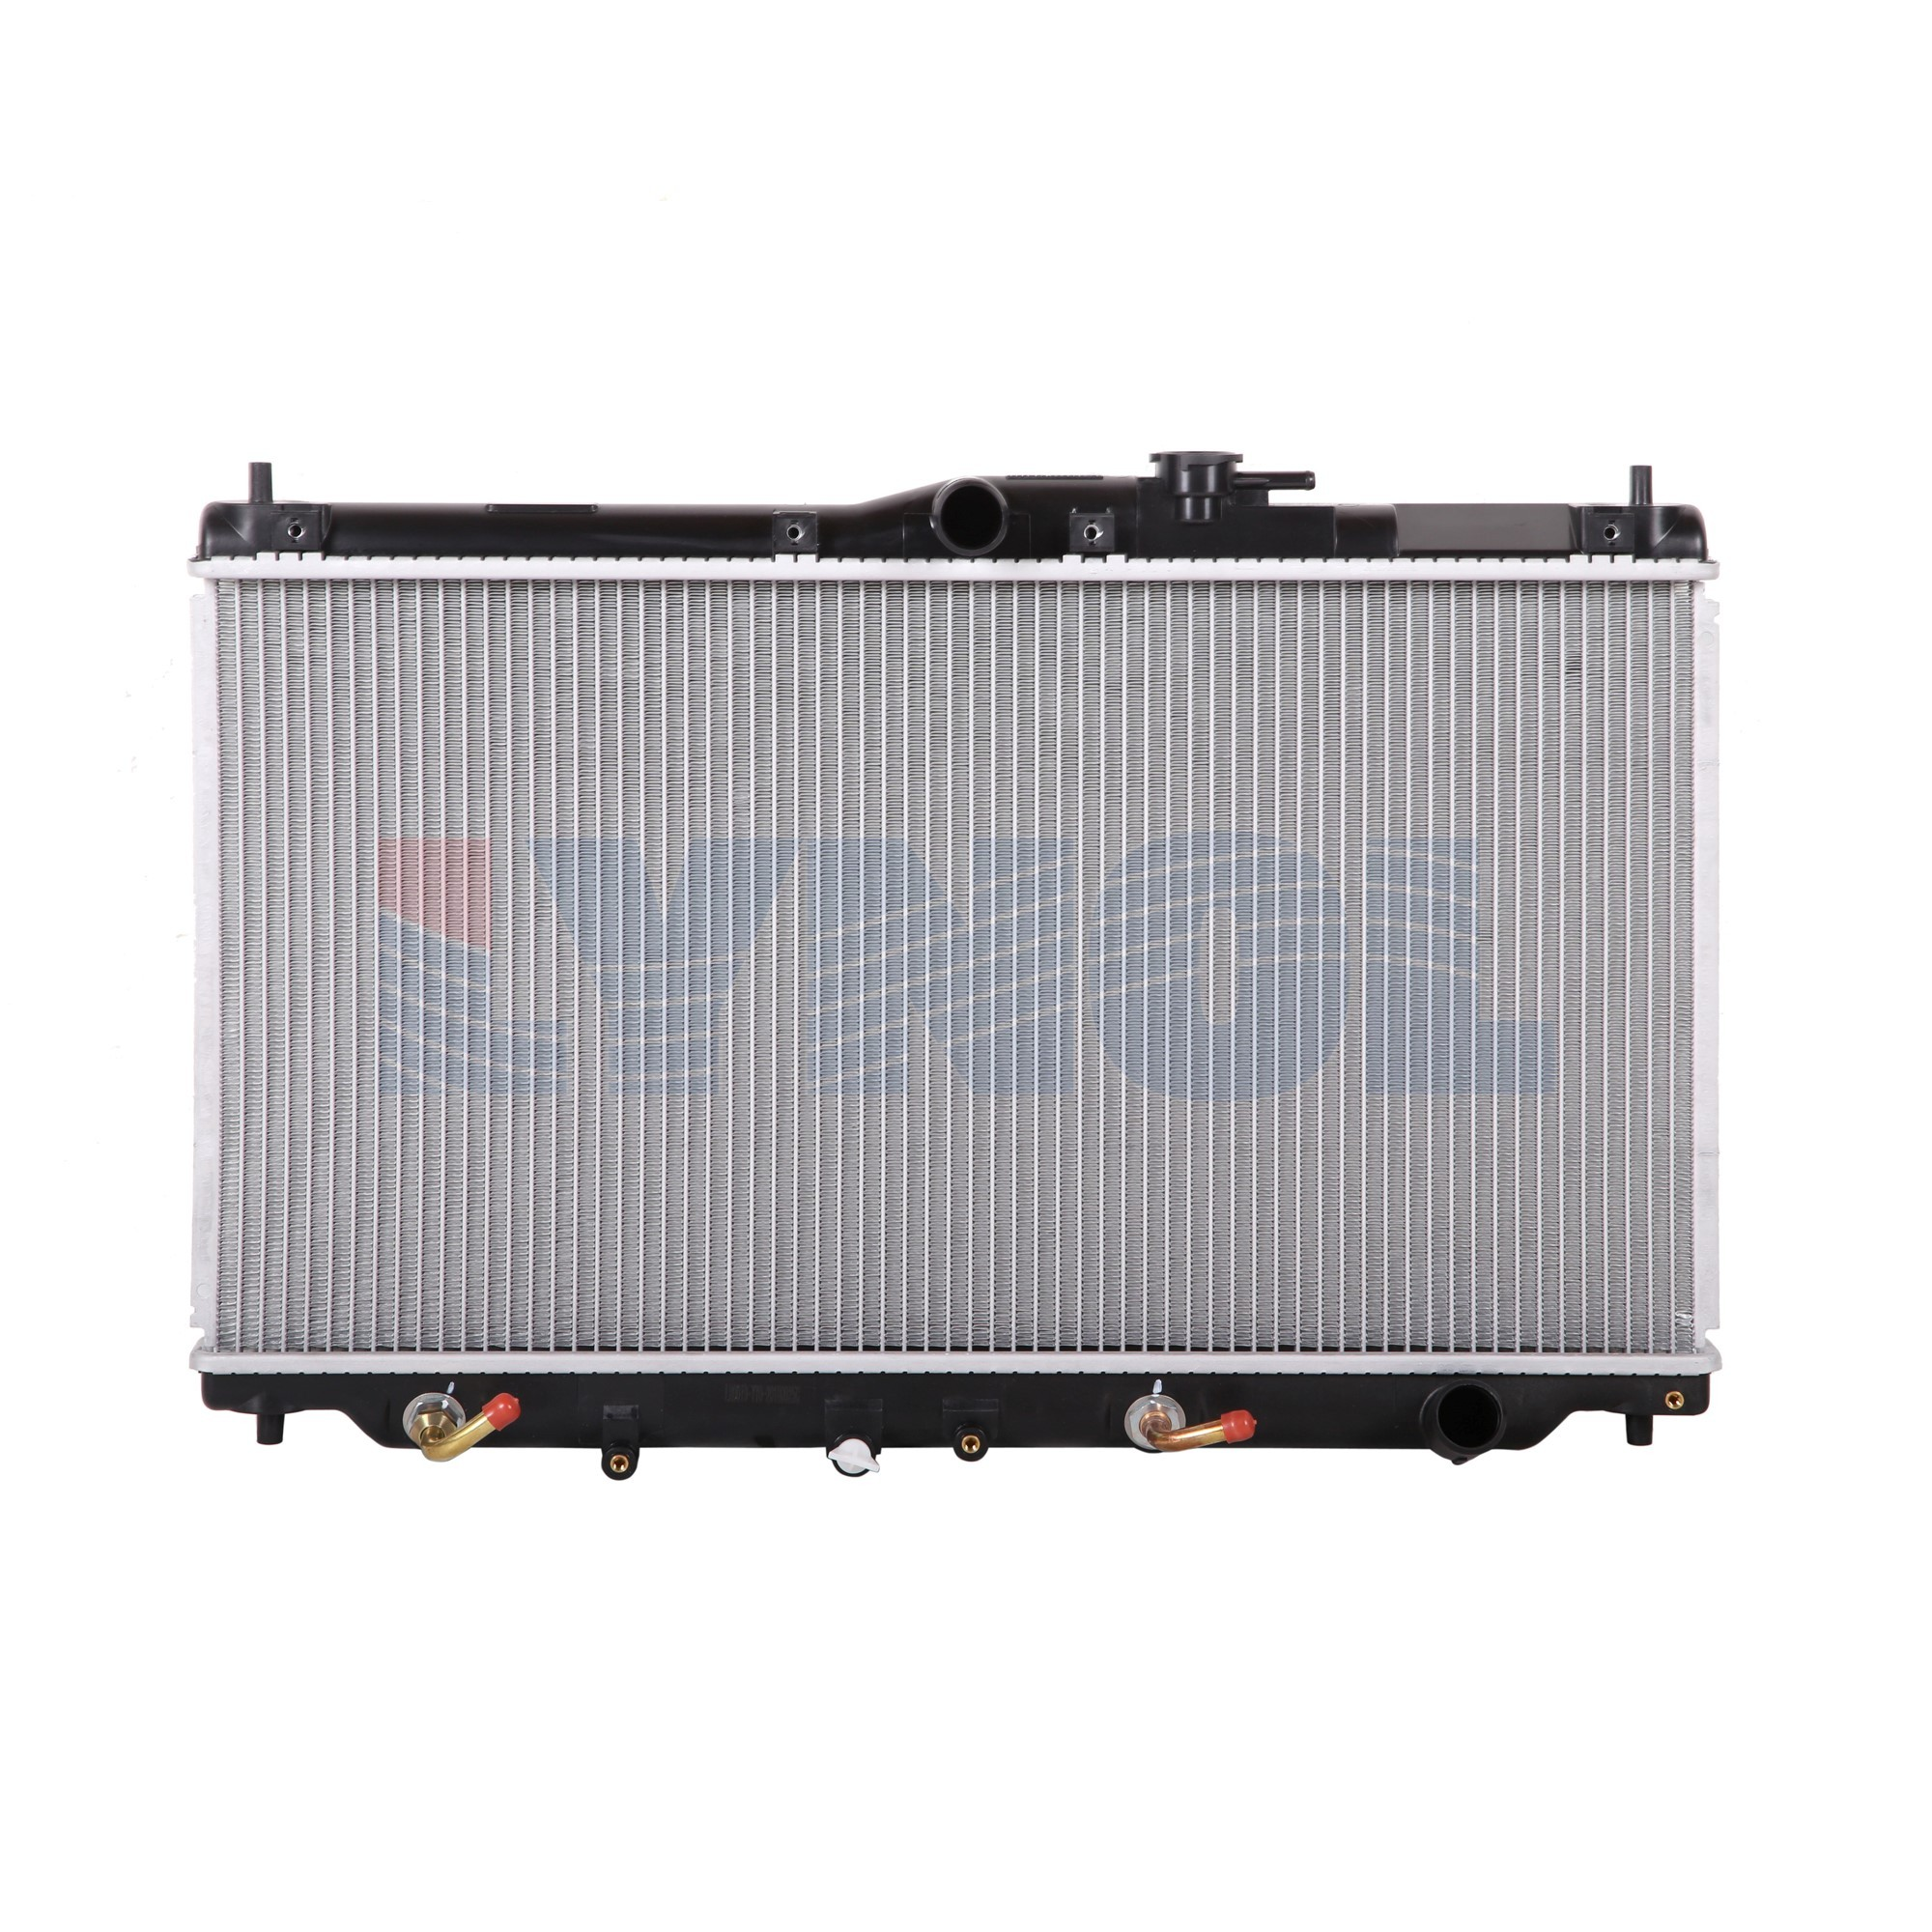 LR0019 - RADIATOR  - 90-96 Honda Accord / Prelude